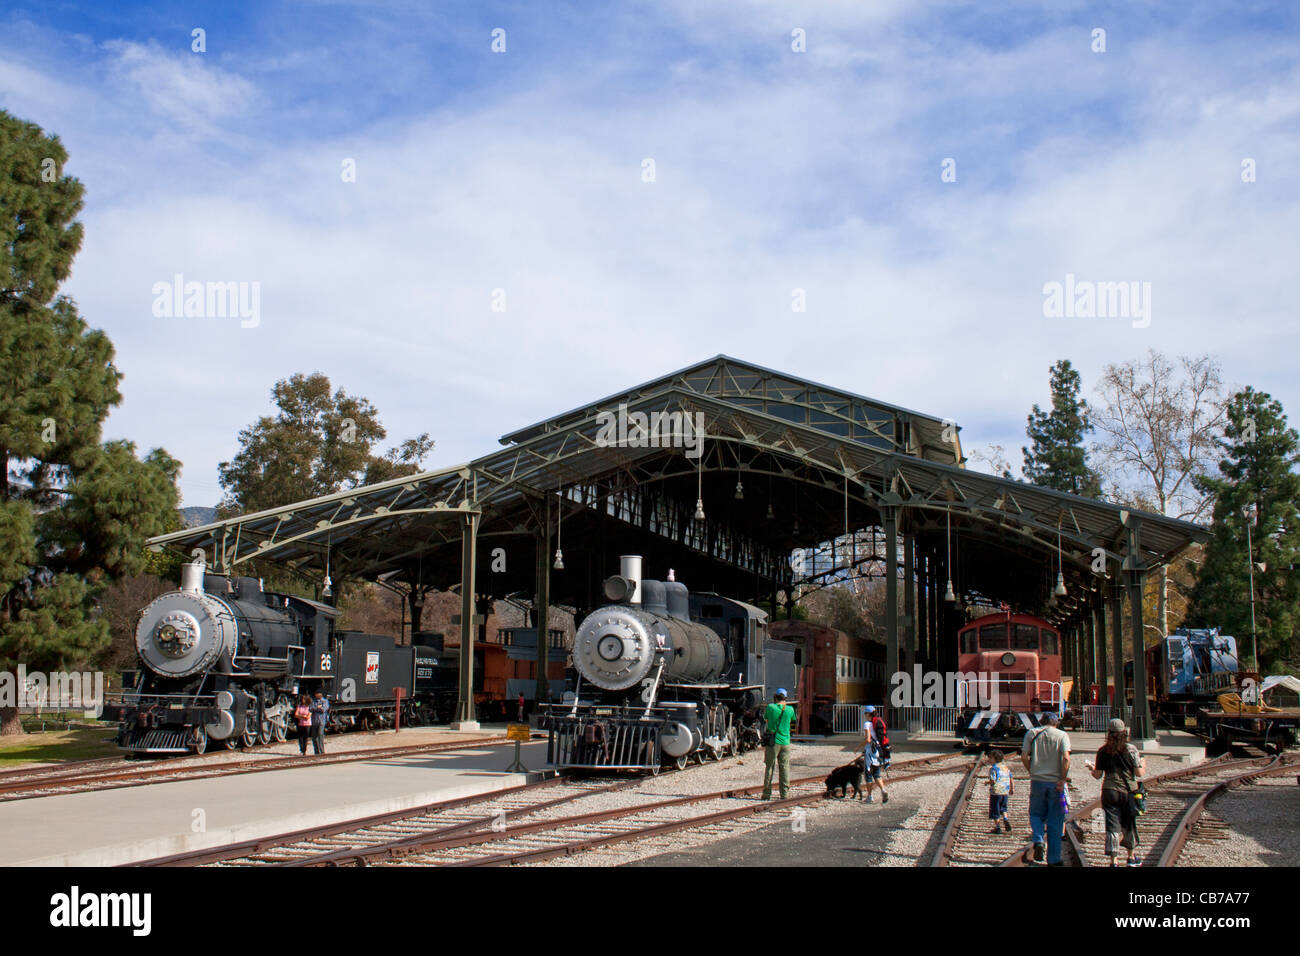 Reisen Sie, Stadt, Griffith Park, Los Angeles, Kalifornien, USA Stockbild